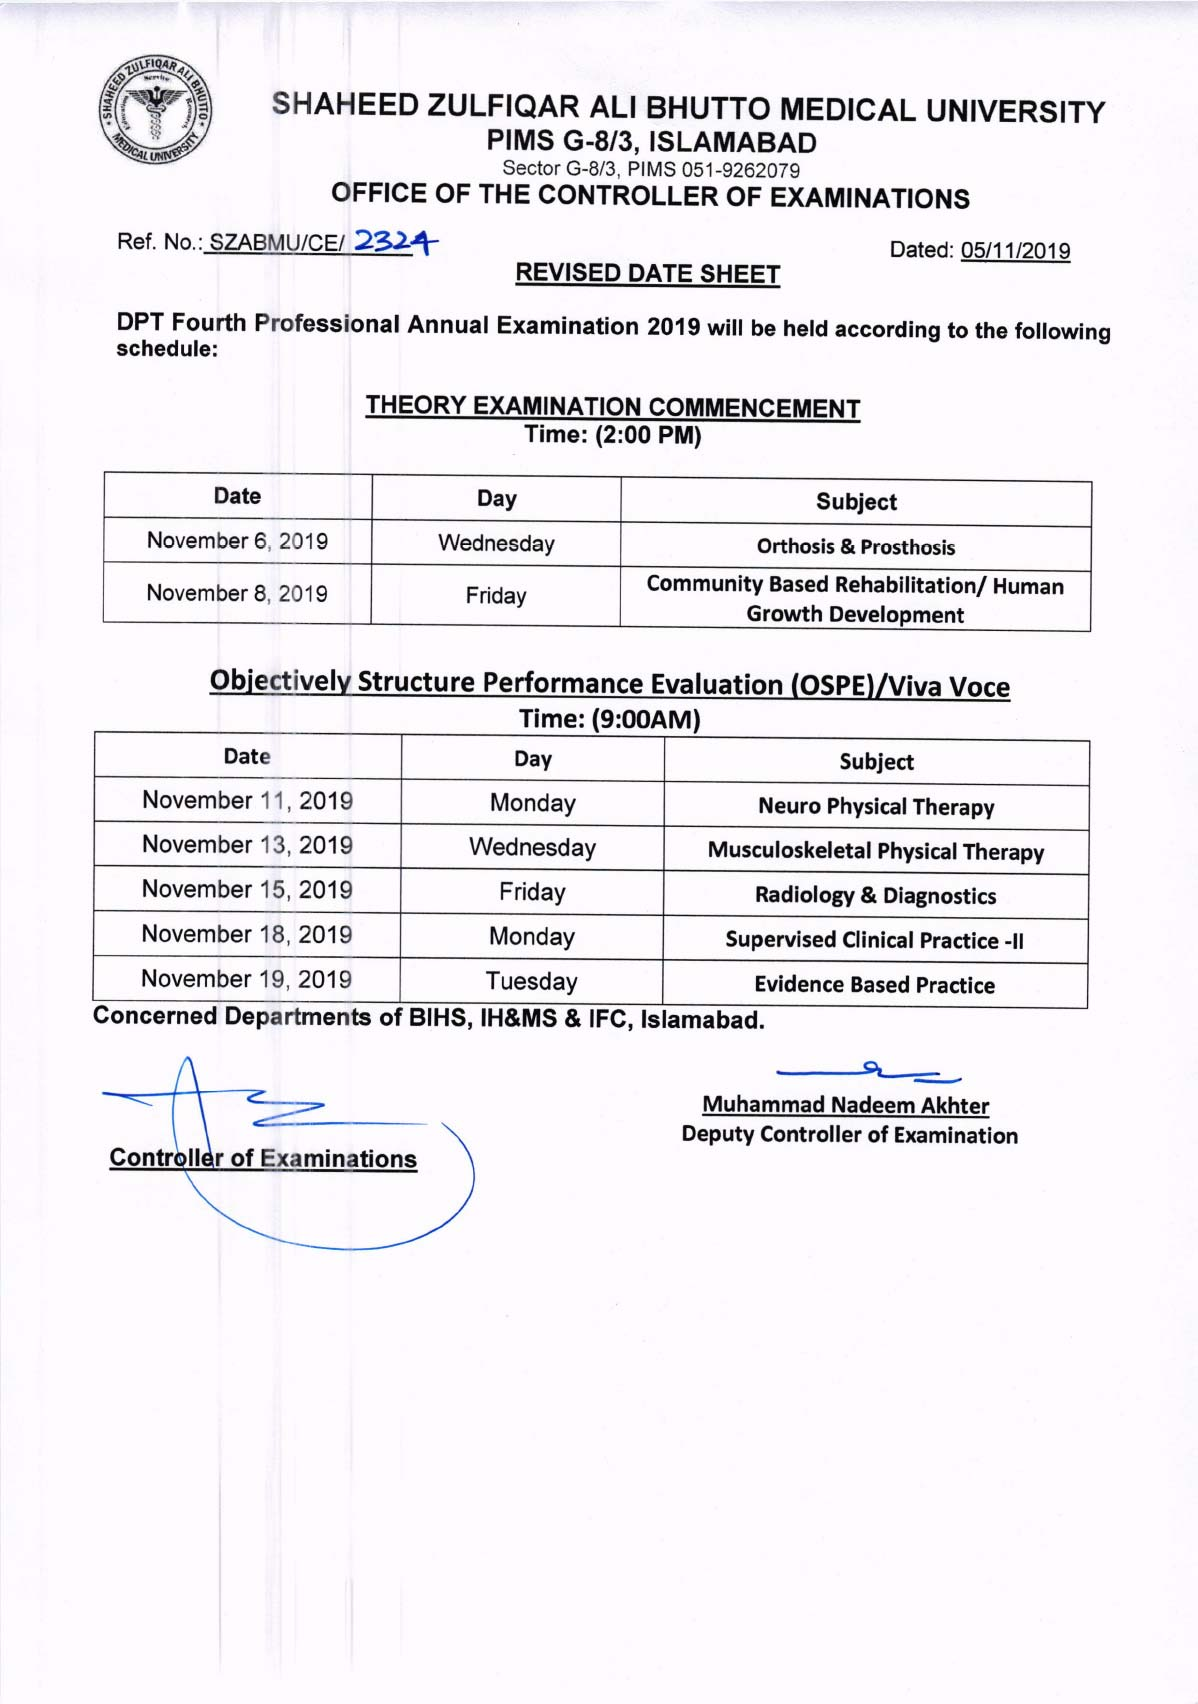 Revised DPT Date Sheets of All Professionals Annual Exam 2019